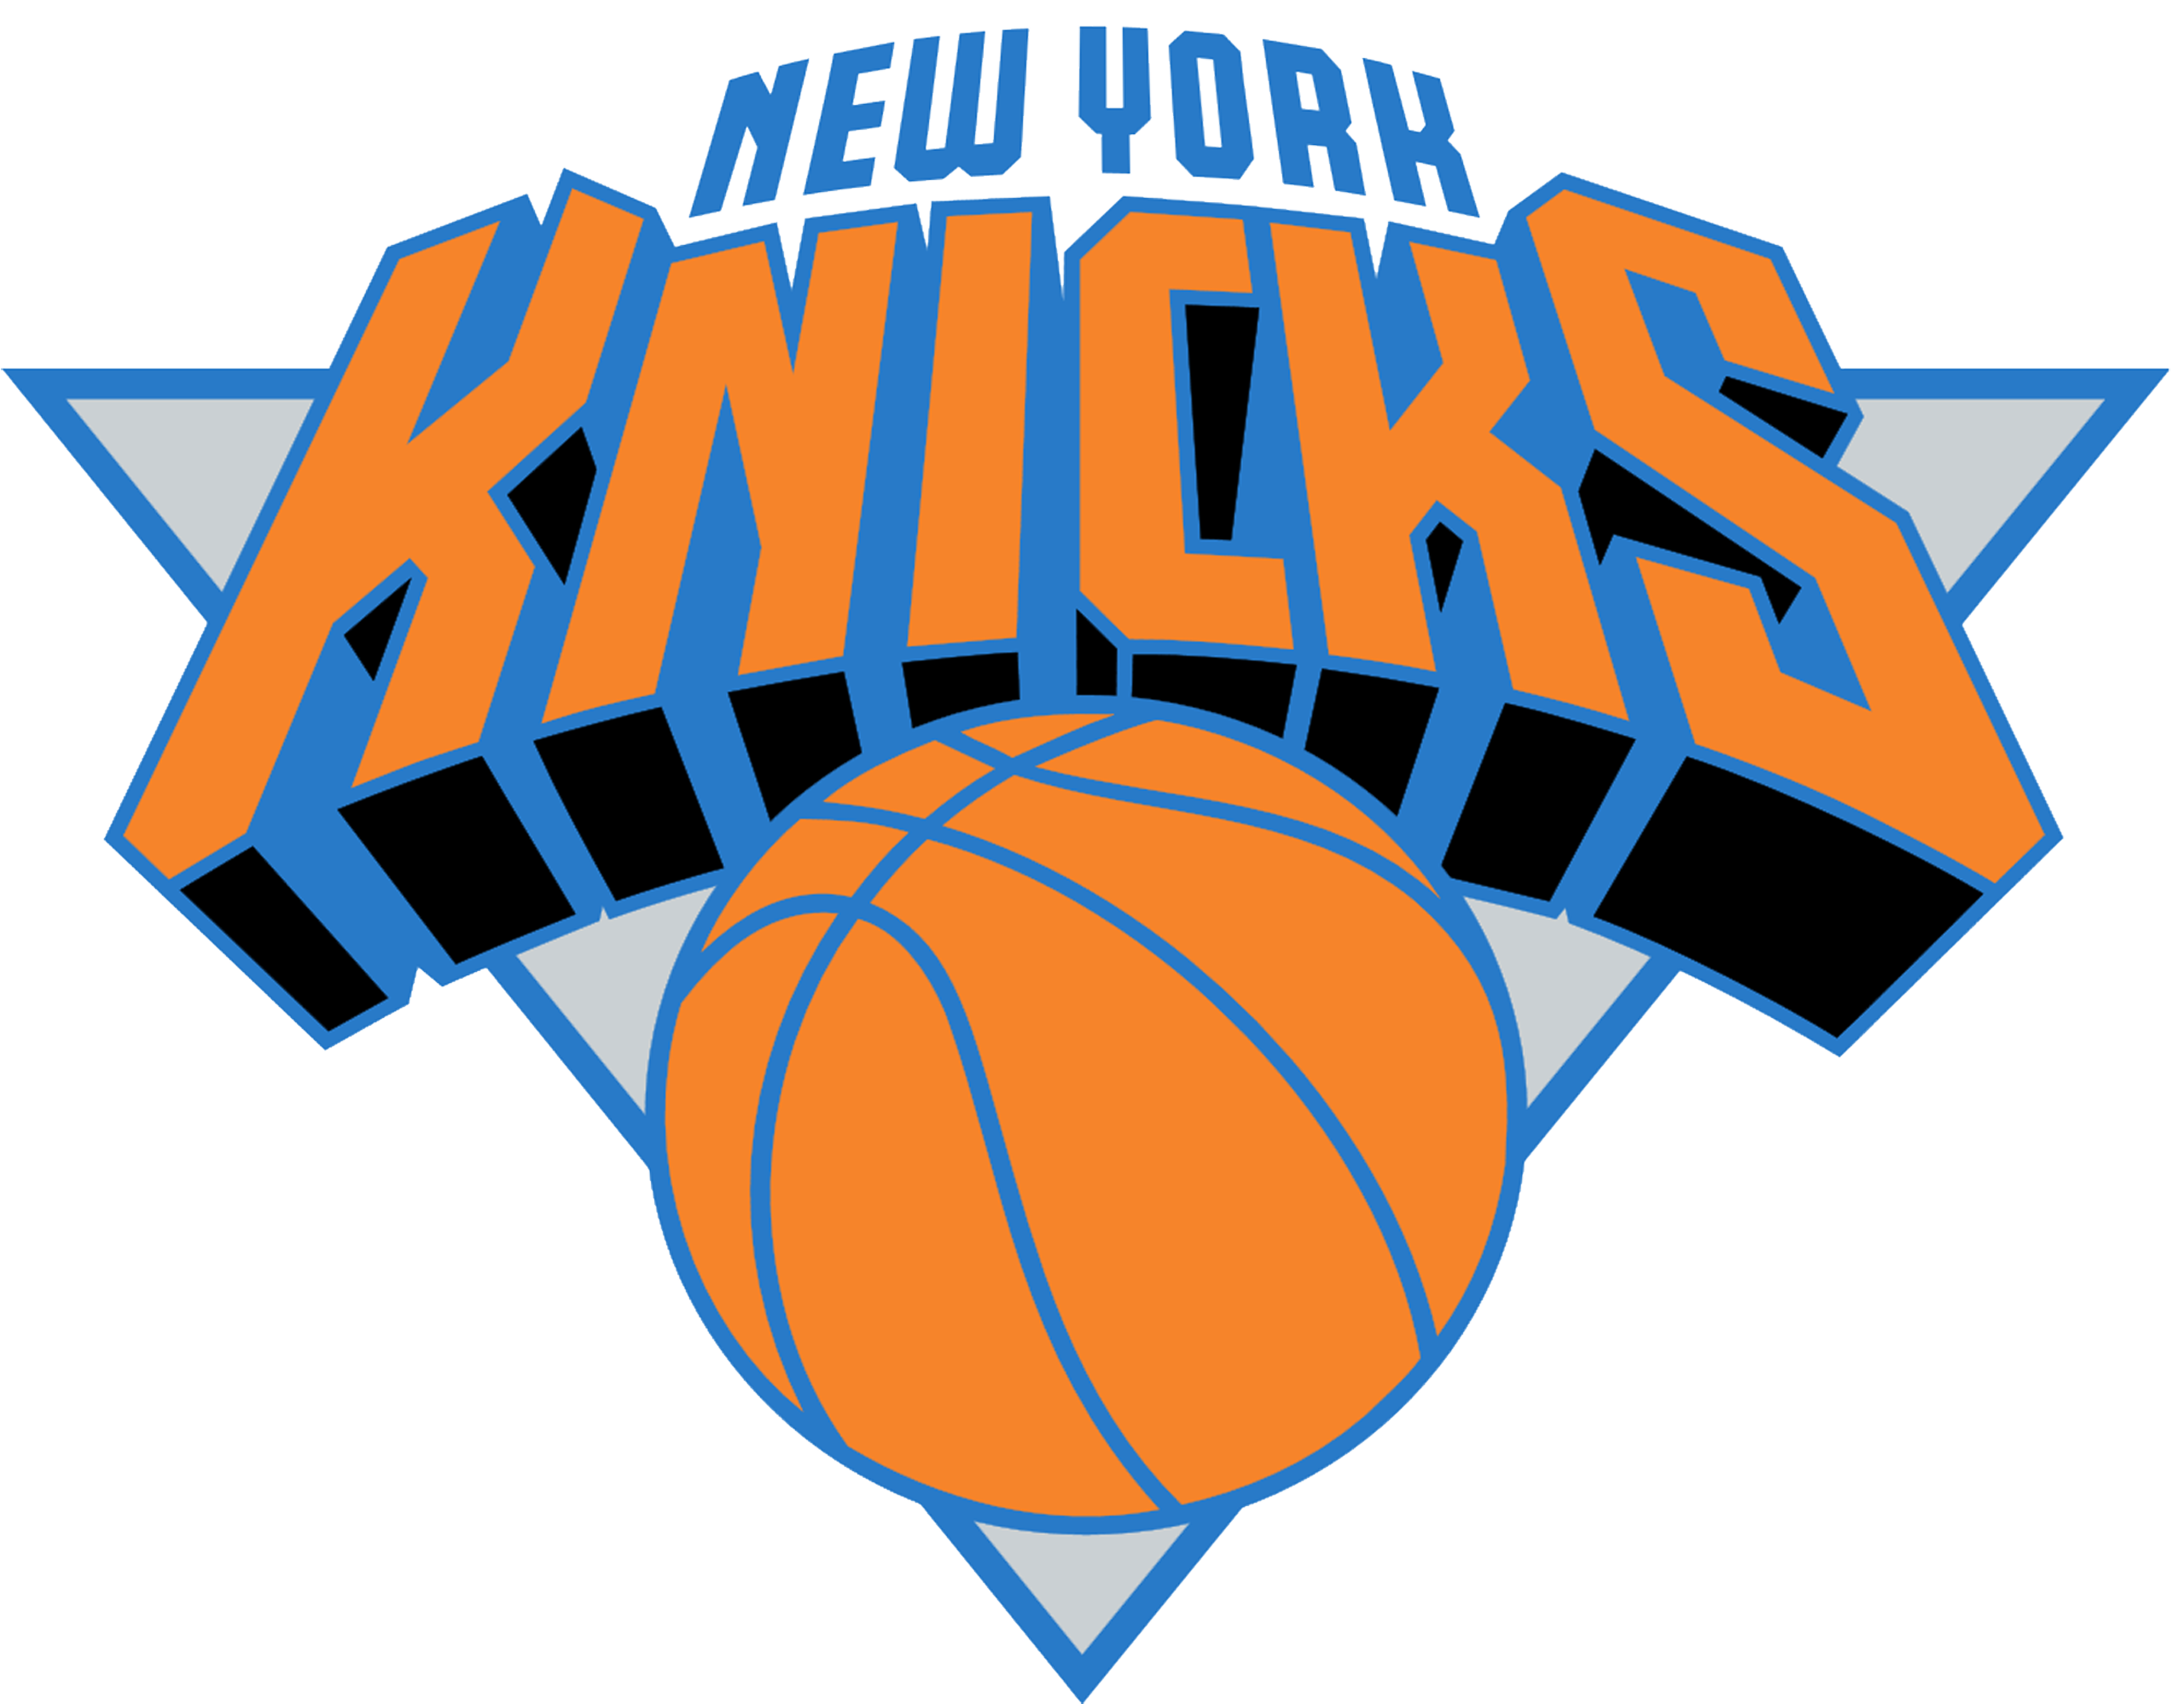 Free Knicks Basketball Cliparts, Download Free Clip Art, Free Clip.